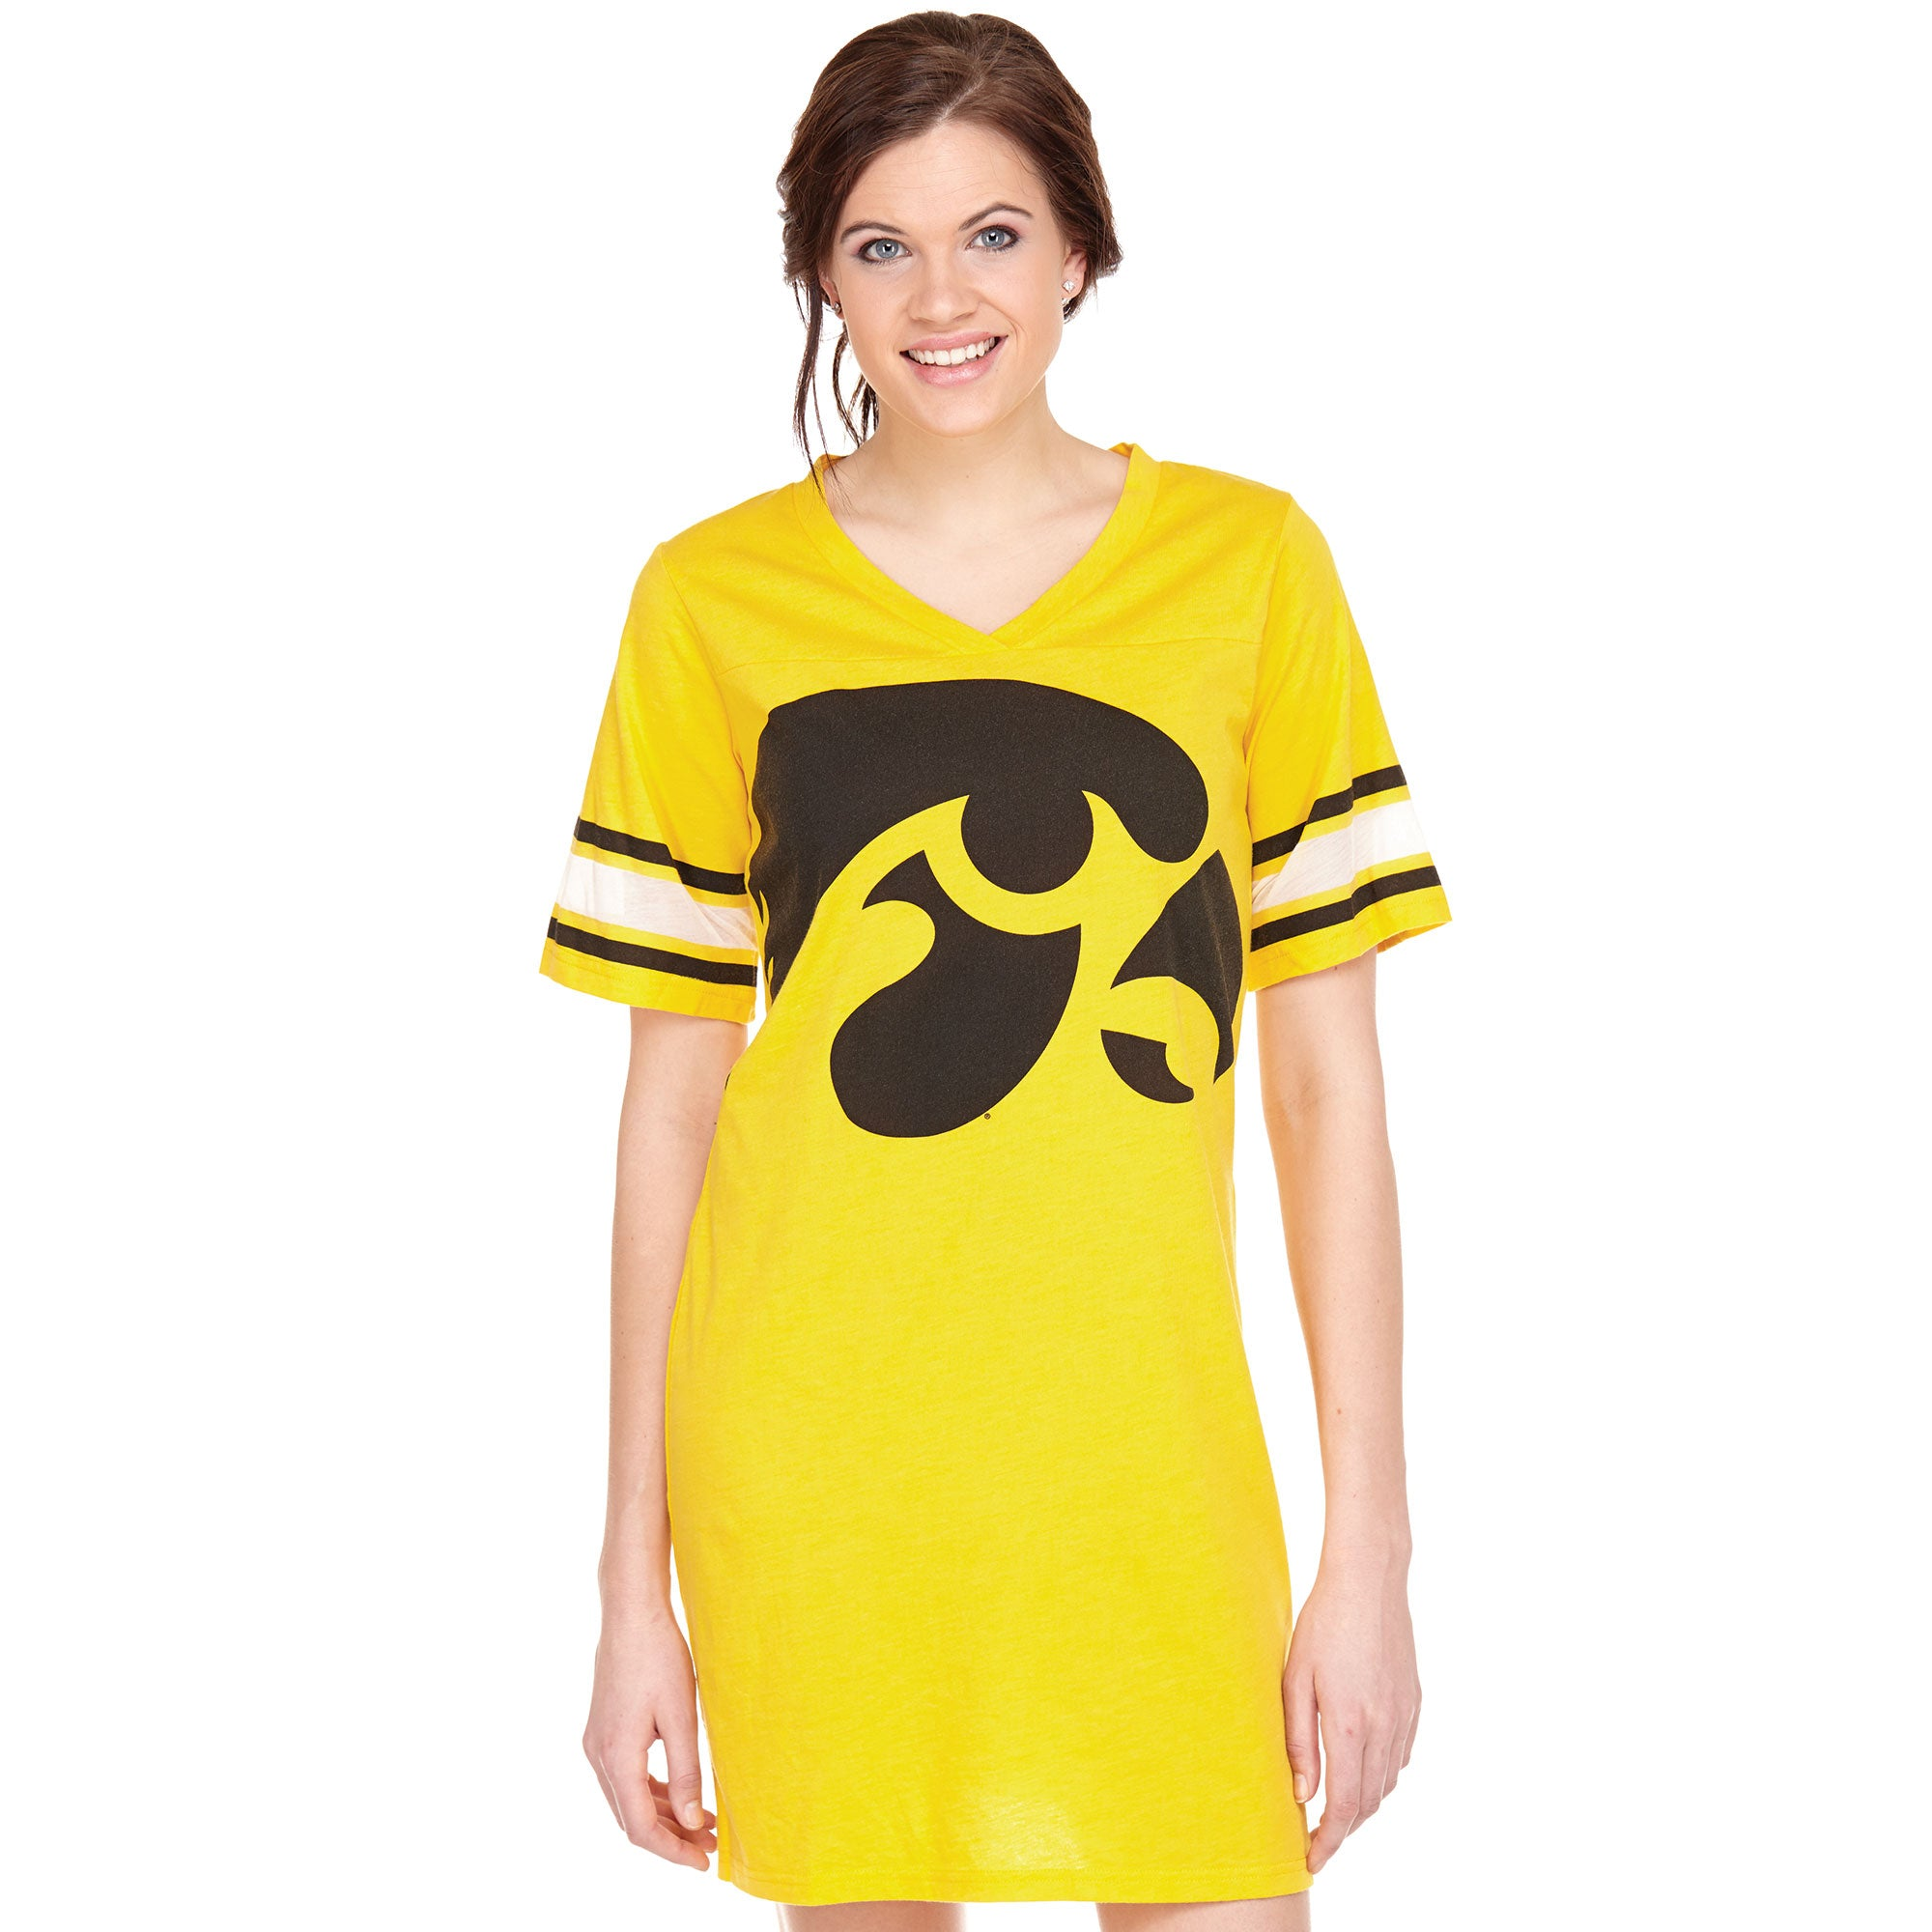 Iowa Hawkeyes Heathered Football Jersey Nightshirt